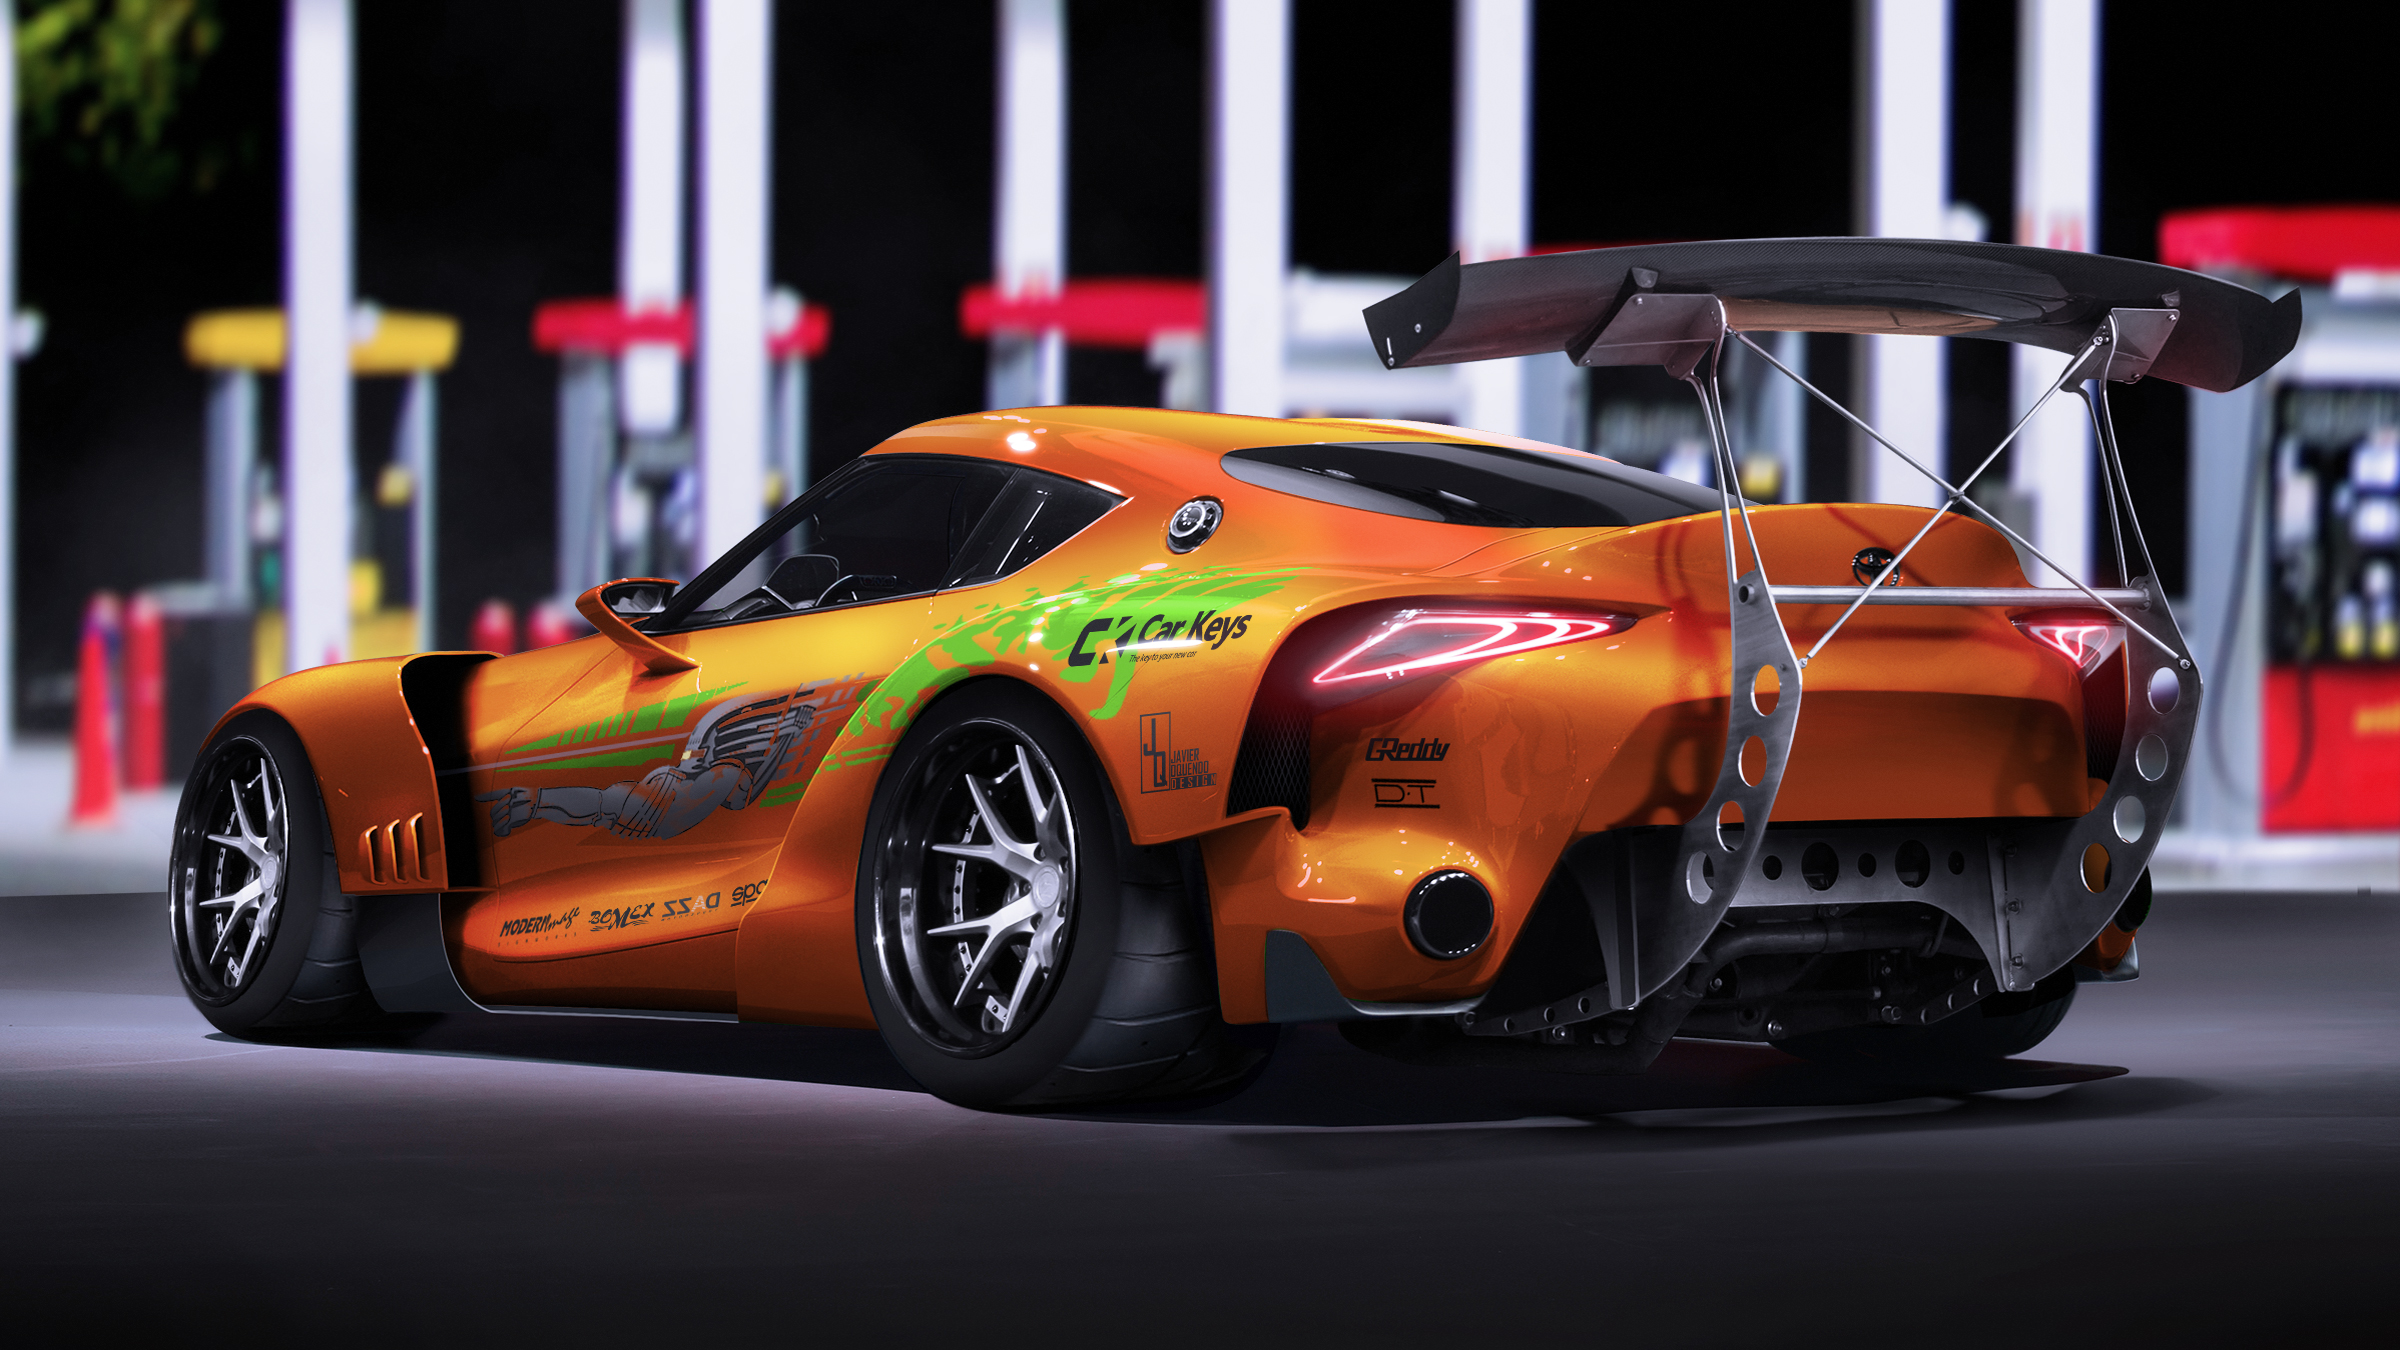 The Fast And The Furious Liveries Applied To Modern